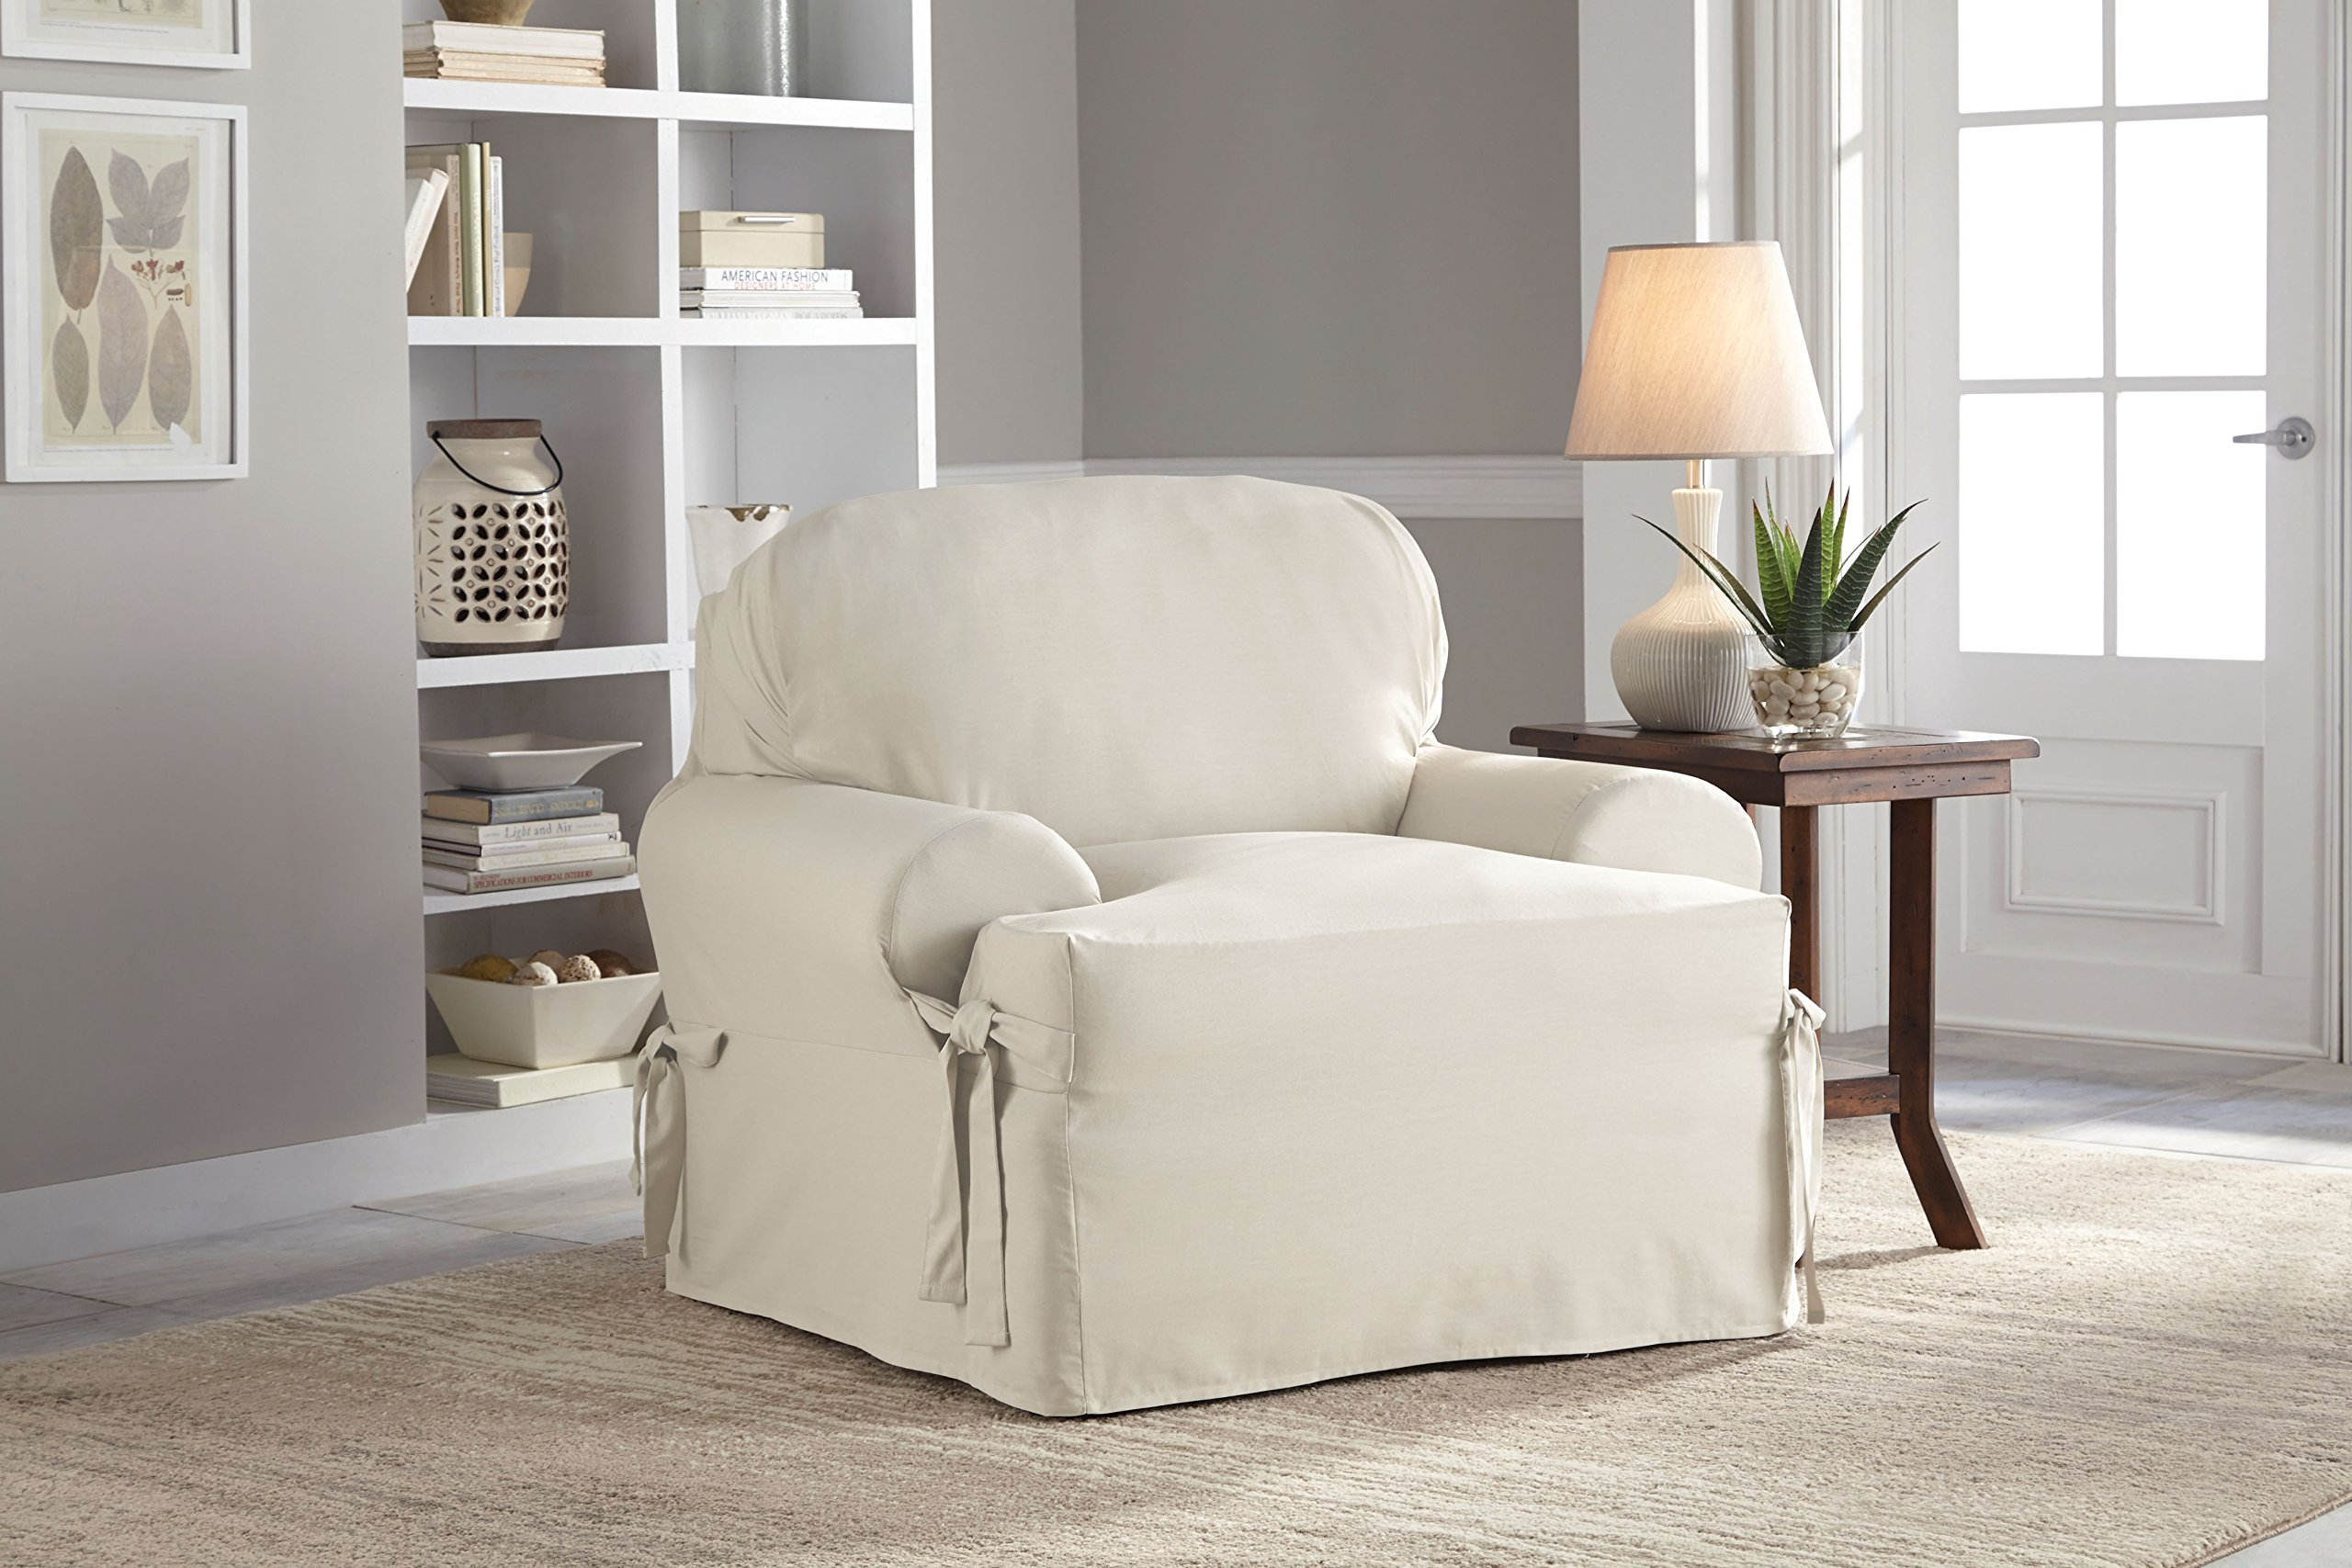 Serta Relaxed Fit Duck Slipcover T-Cushion Chair & Ottoman Set, Natural, 2 Piece by Serta